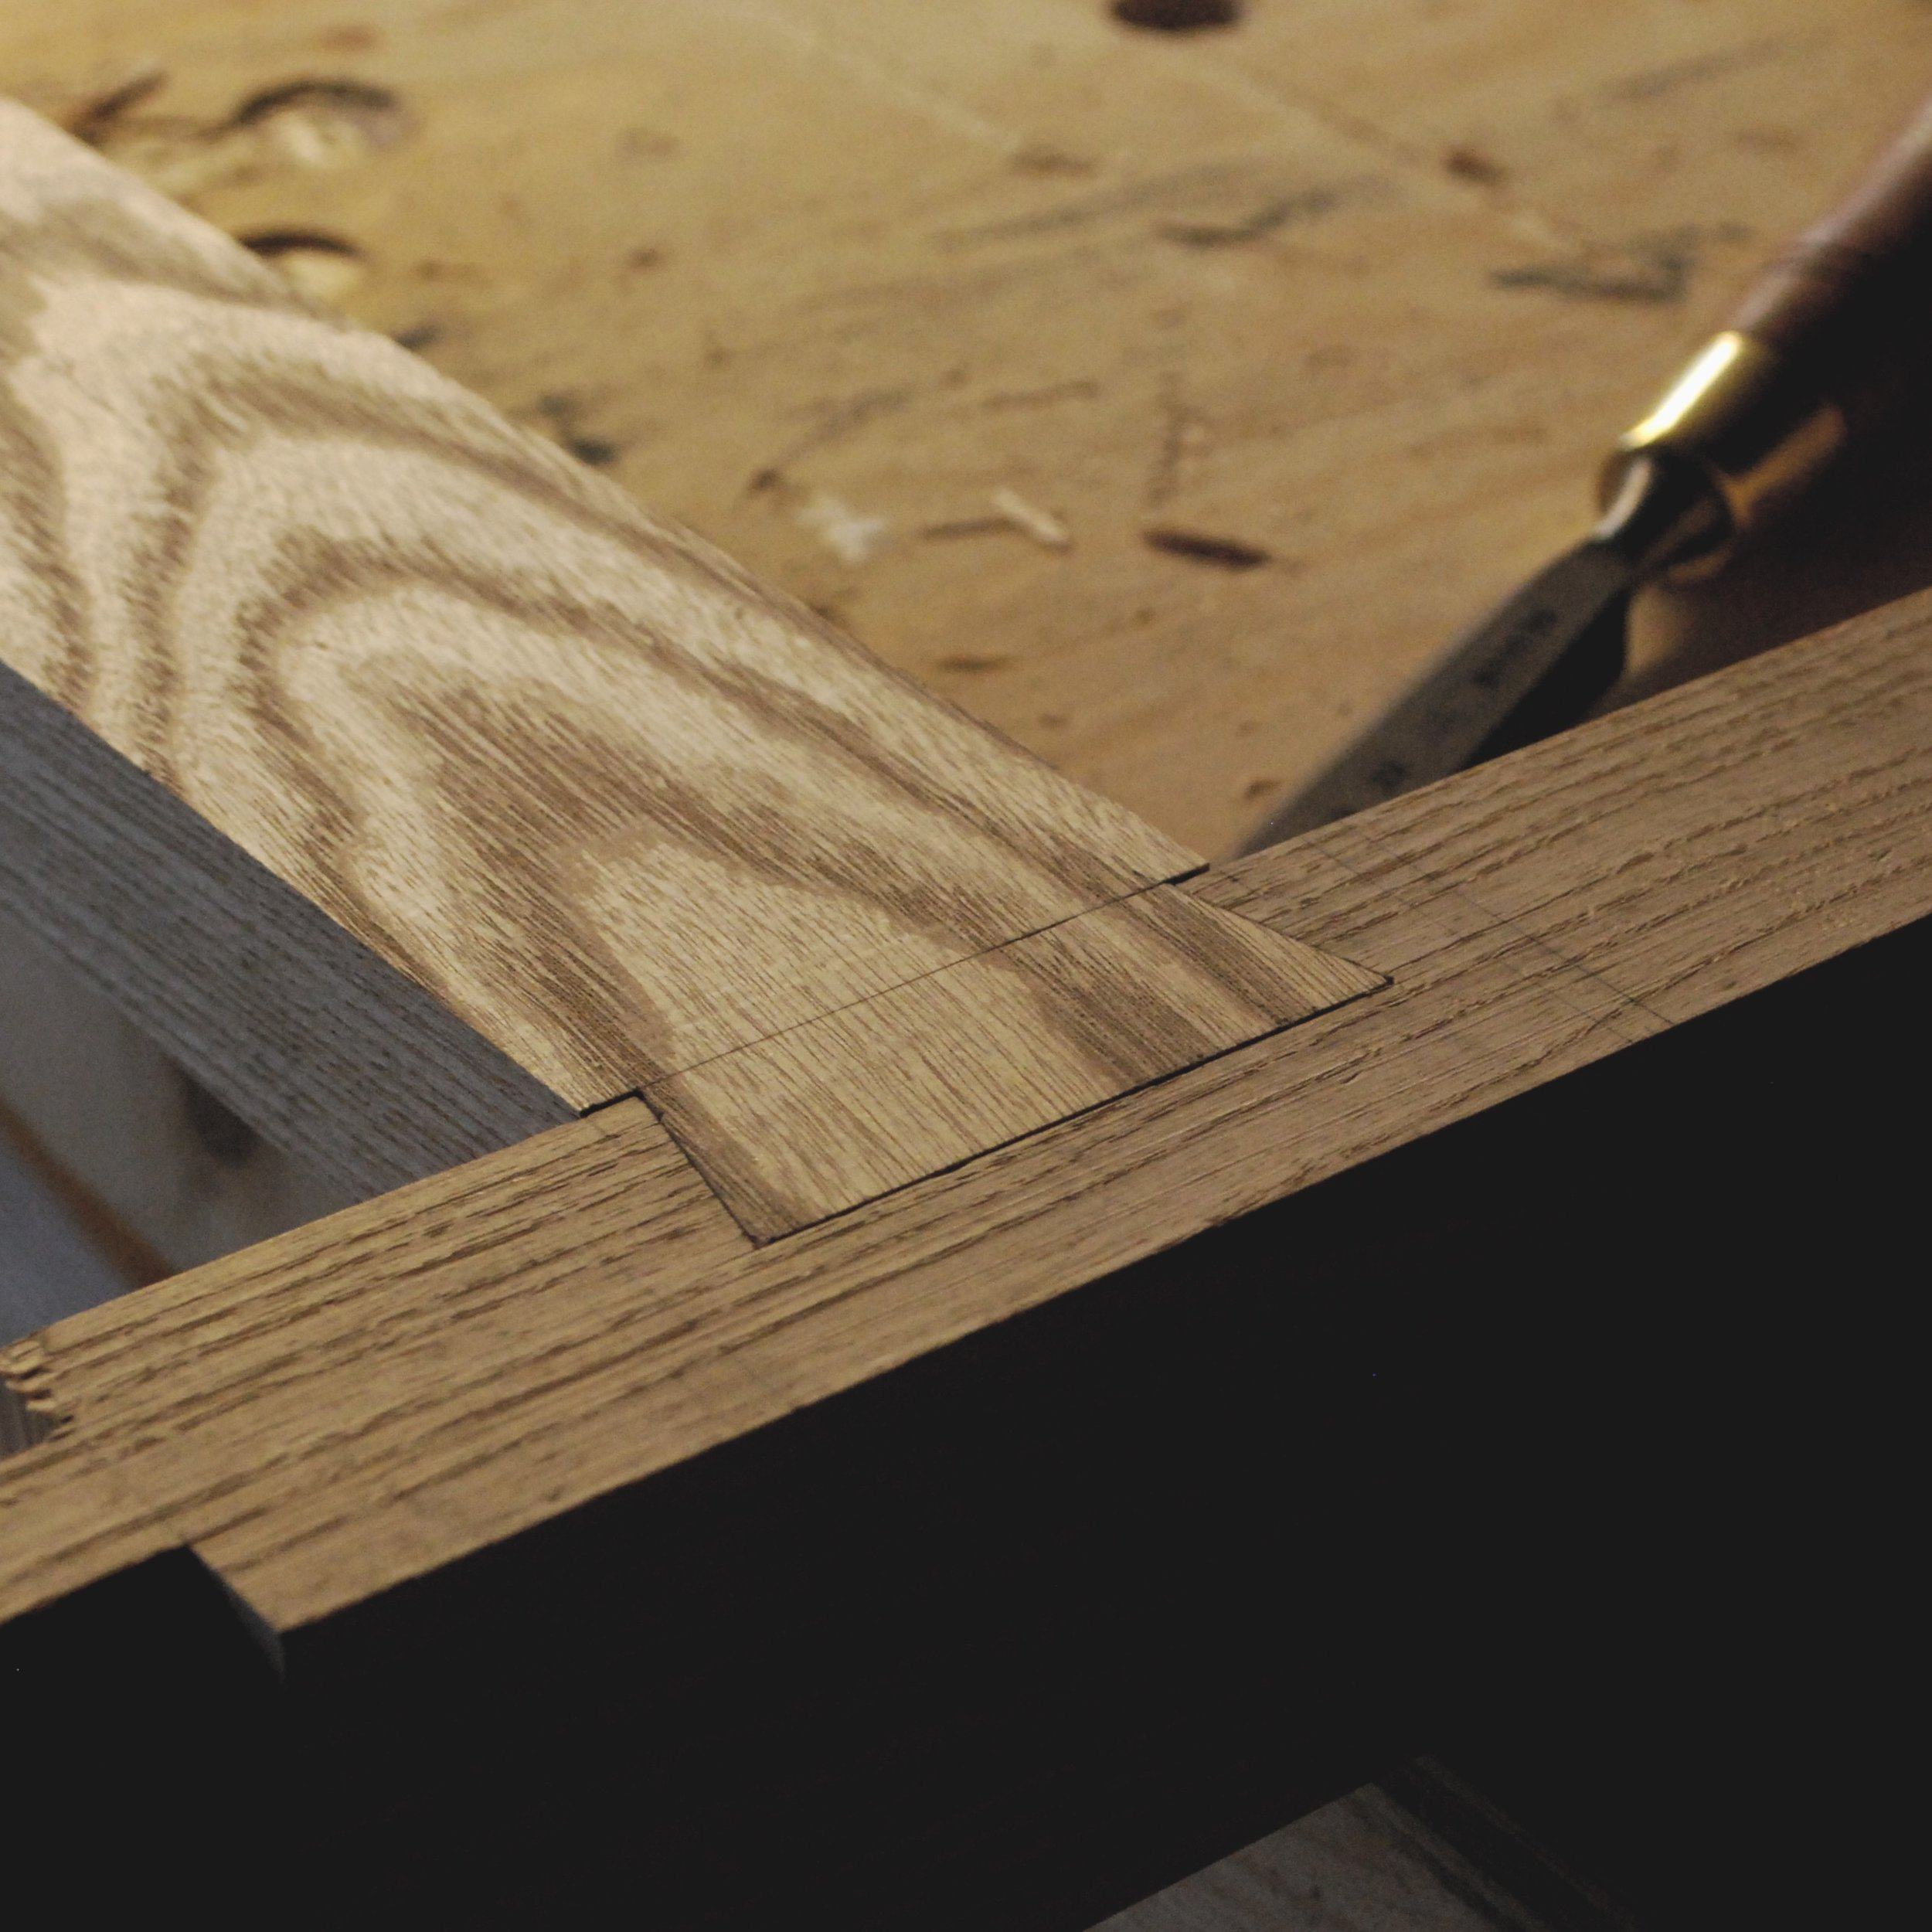 Large dovetail joint in a bespoke ash dining table